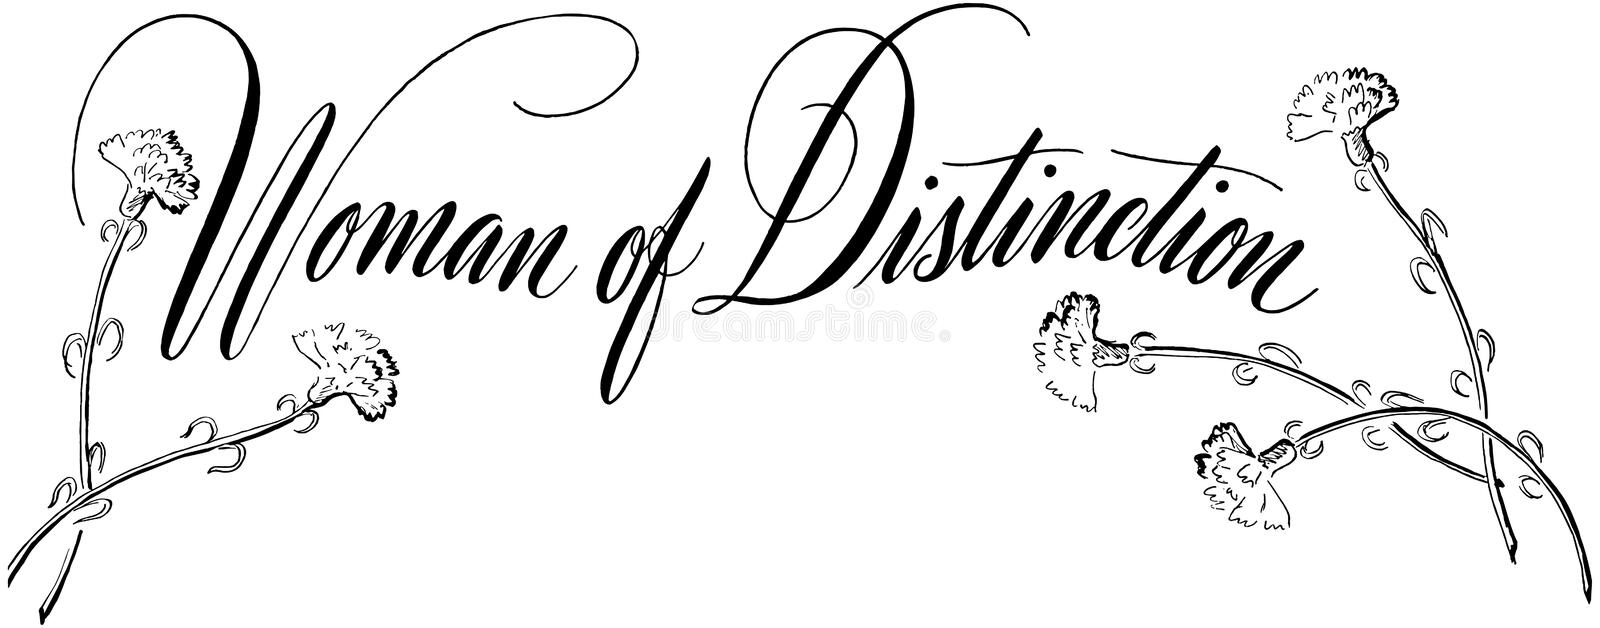 Woman Of Distinction royalty free illustration